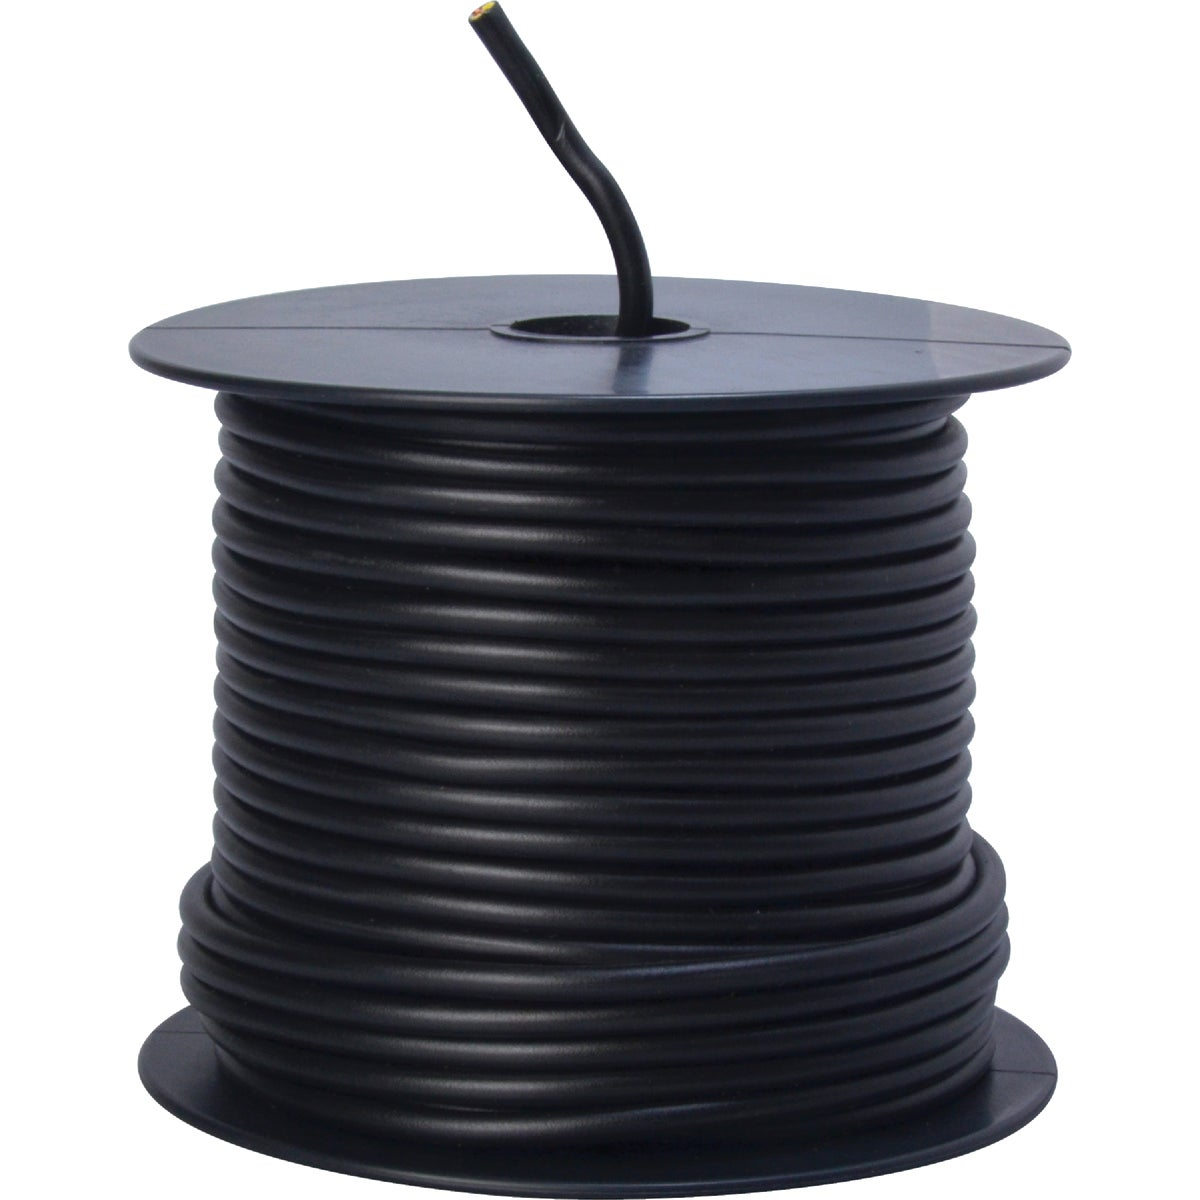 100' 12GA BLK AUTO WIRE - 12-100-11 by Woods Wire Coleman